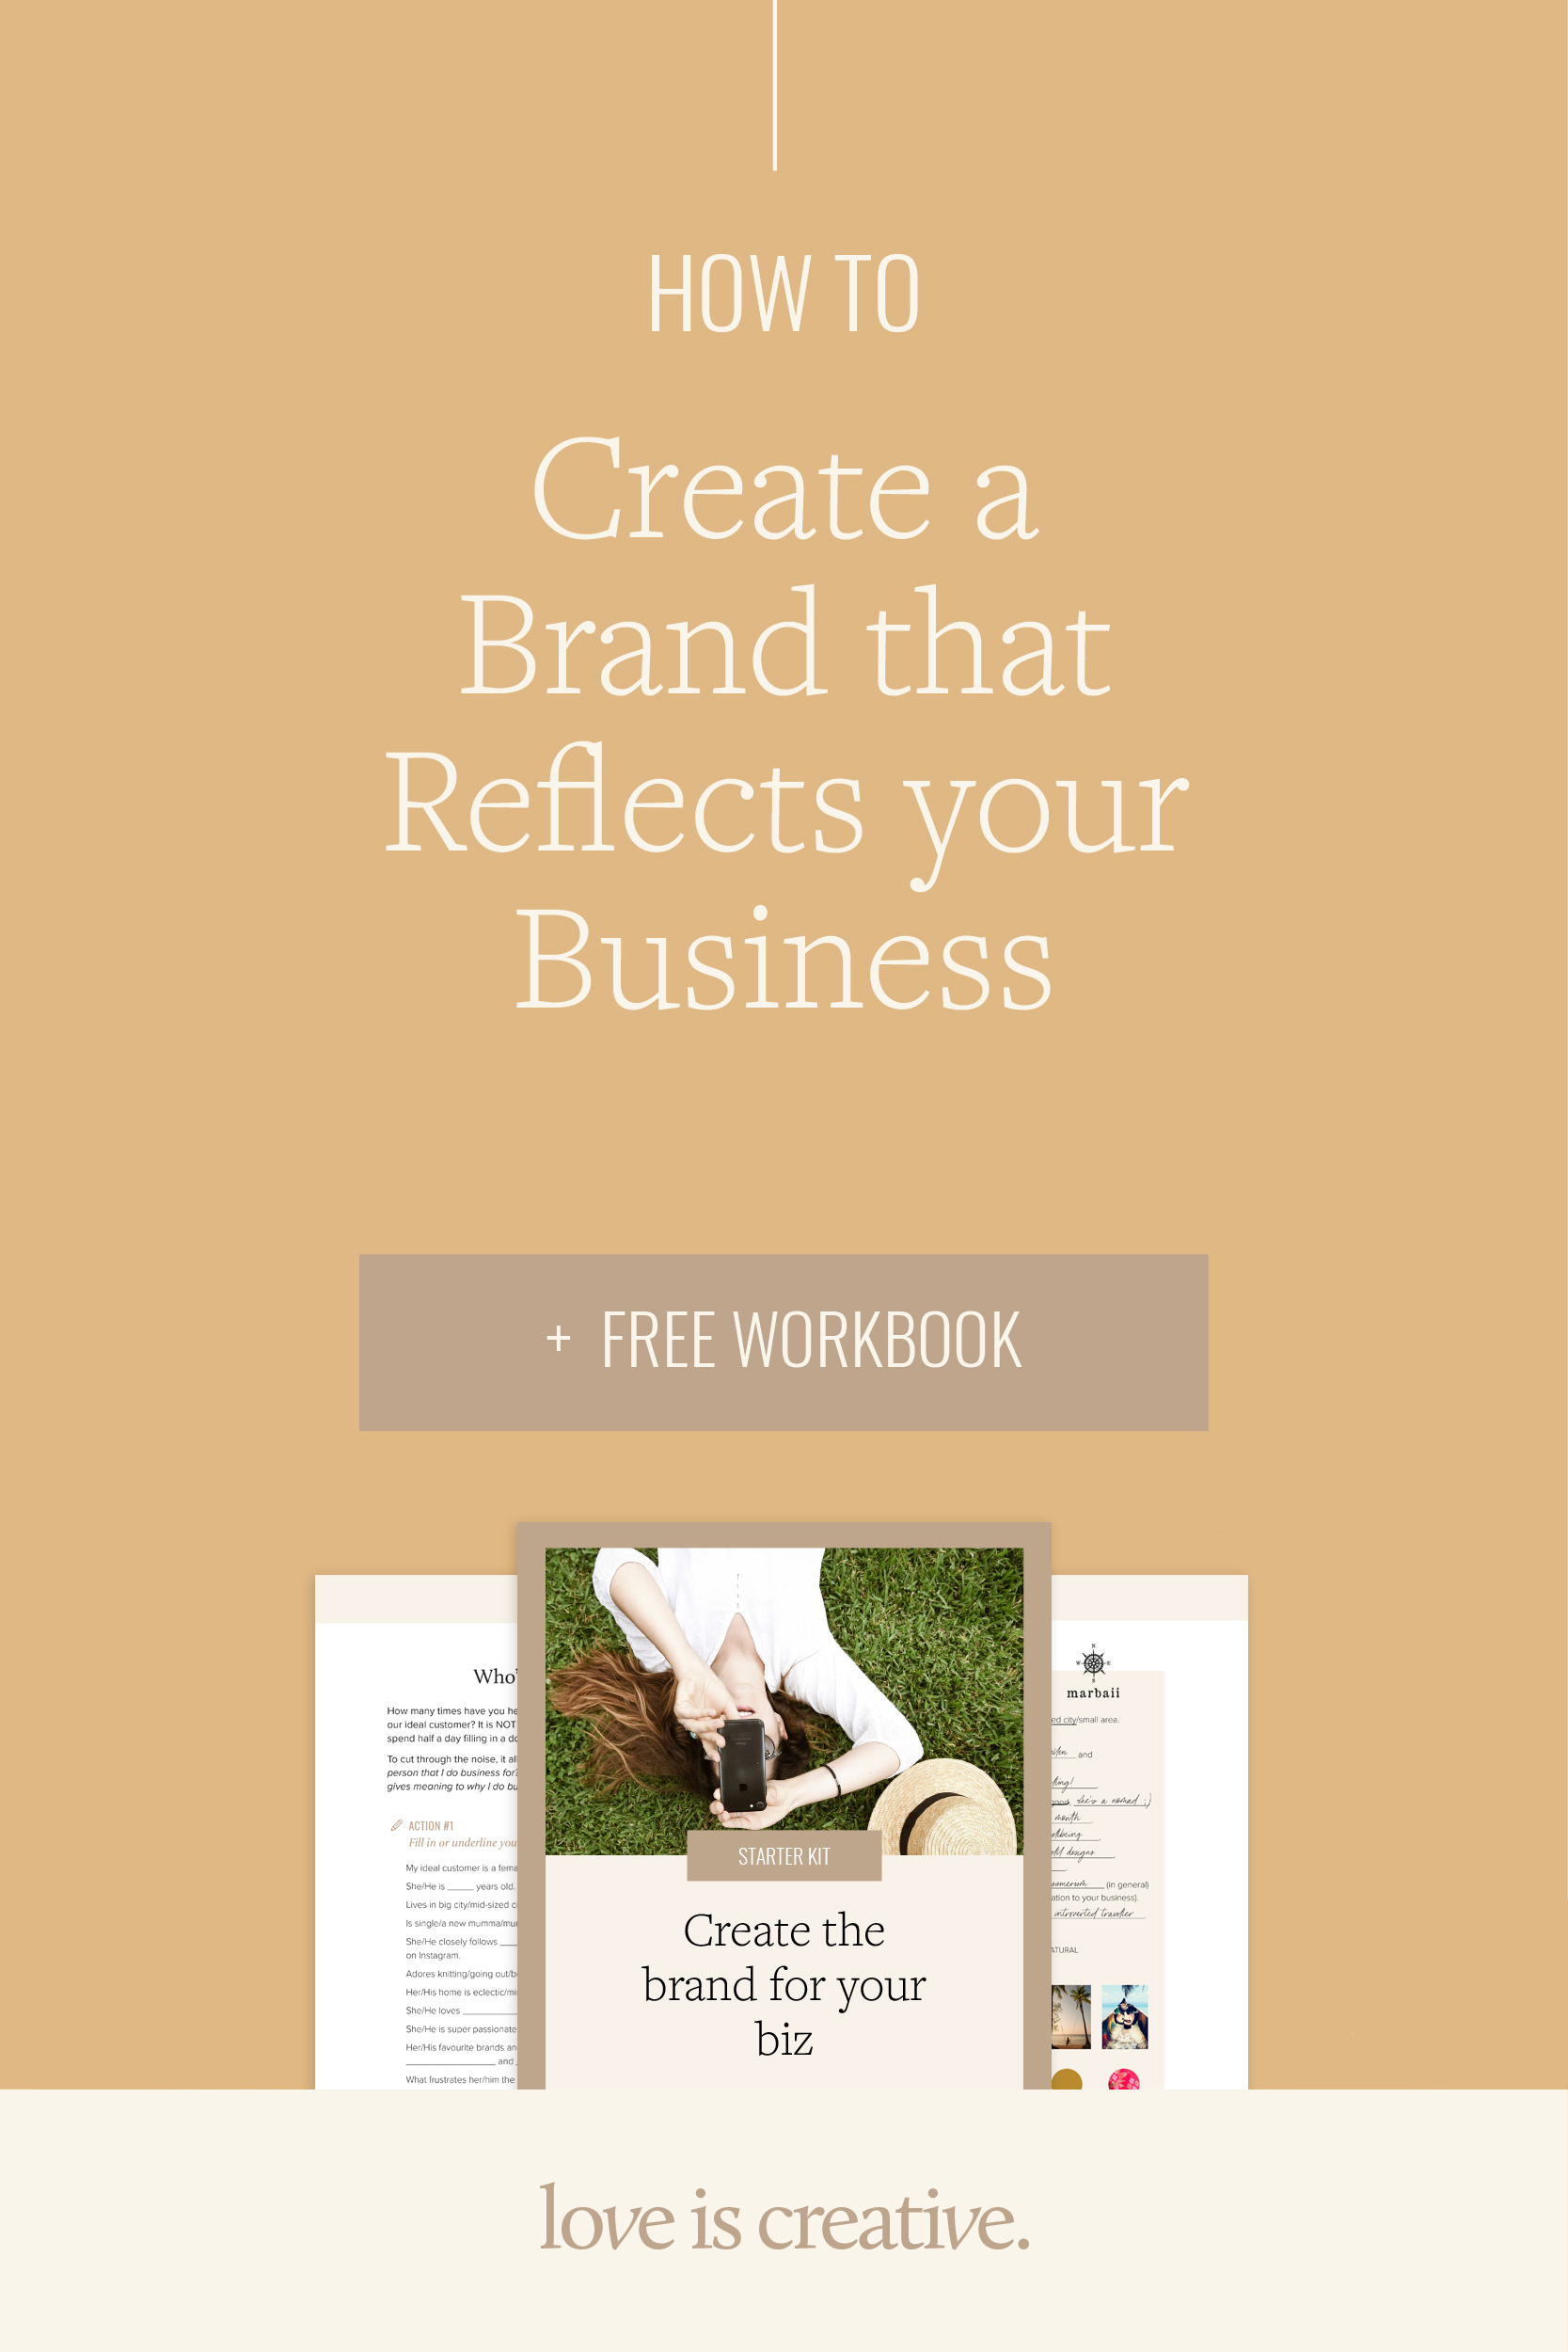 How to Create a Brand that Reflects your Business